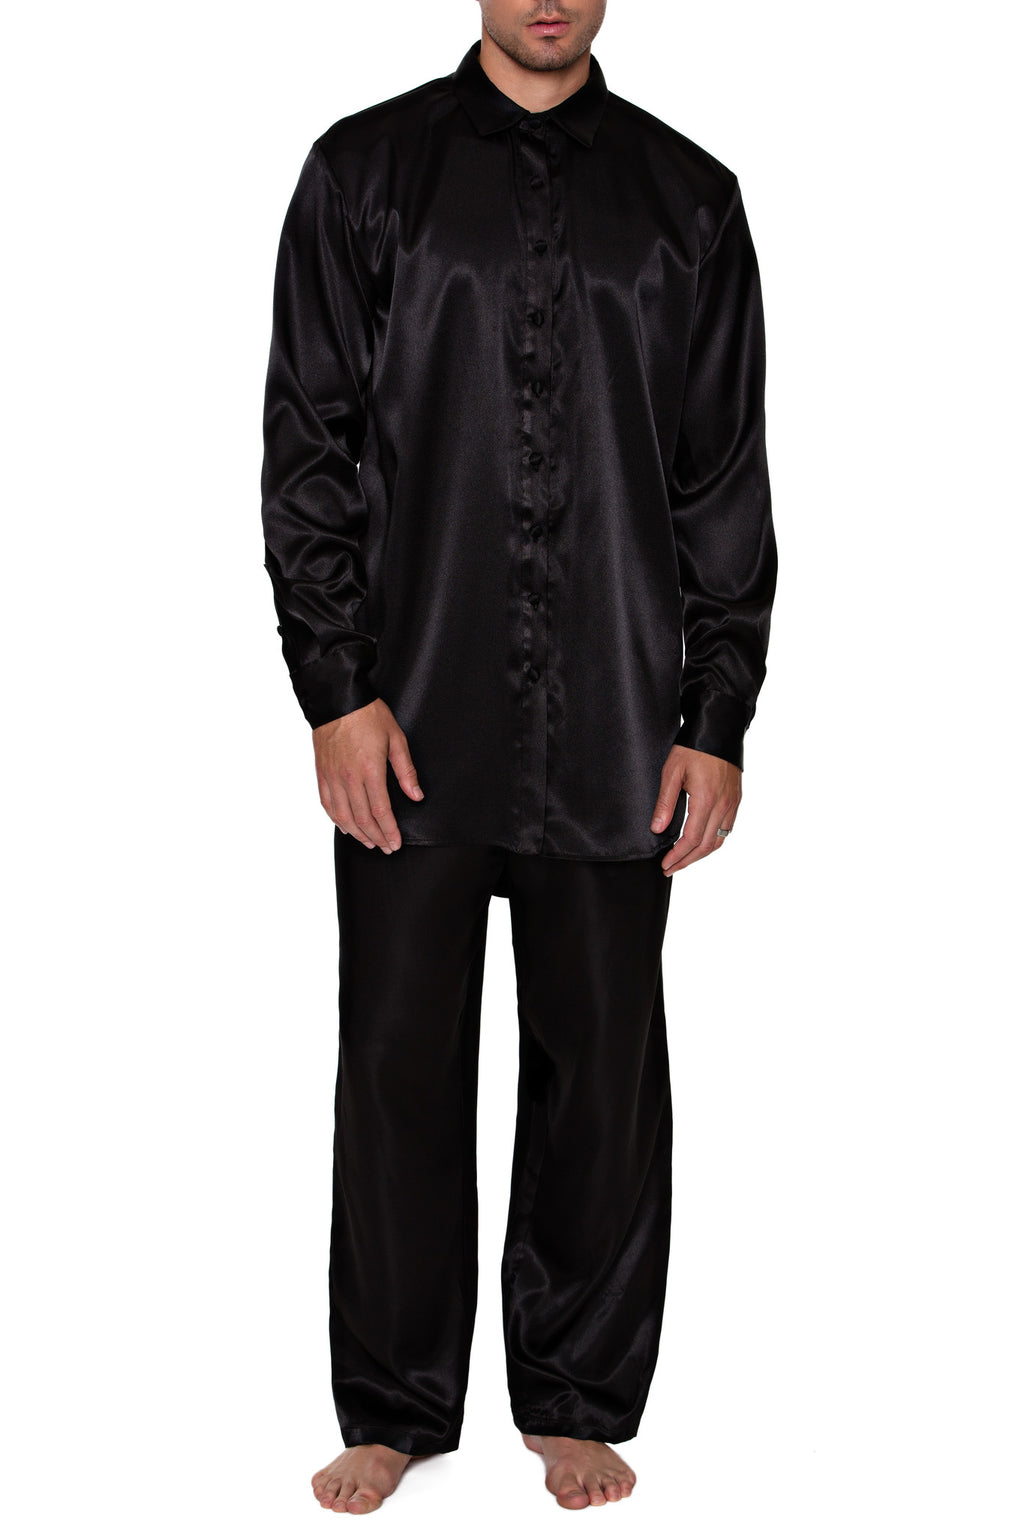 BUTTON DOWN SHIRT in SATIN - MENAGERIE Intimates MENS Lingerie